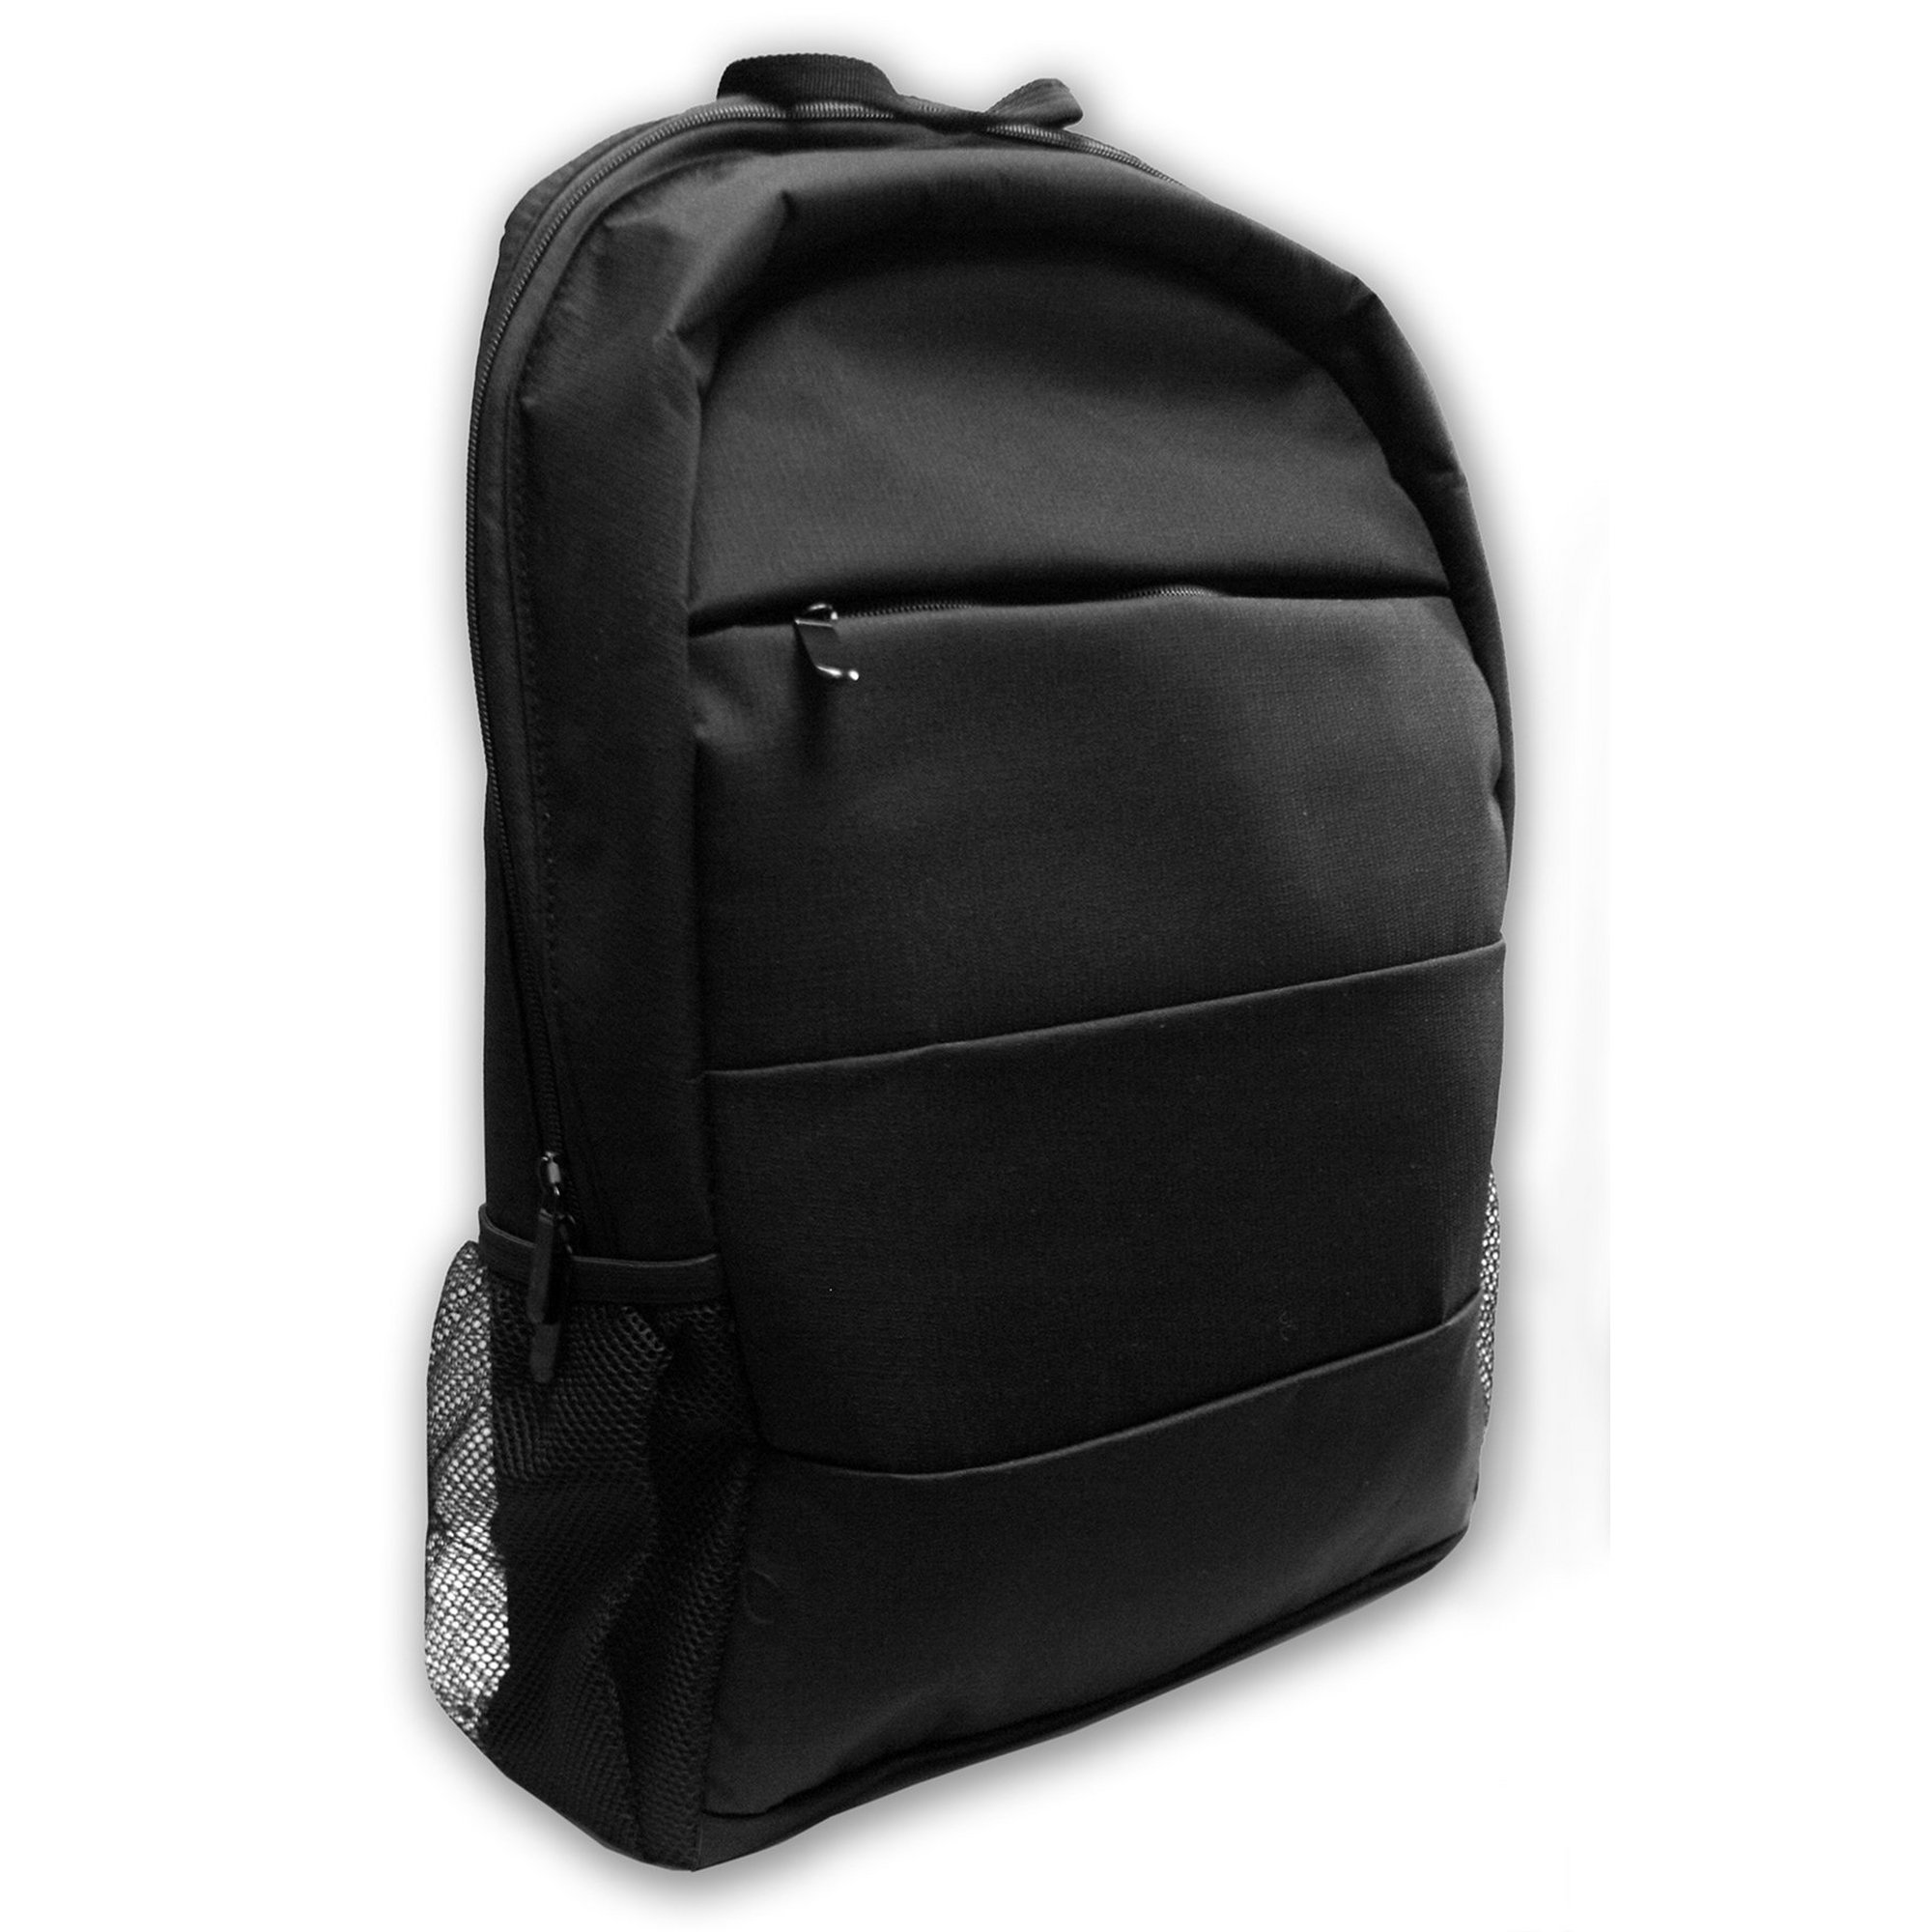 Image of High Quality 15.6 Inch Laptop Backpack with Padded Internal Compa...